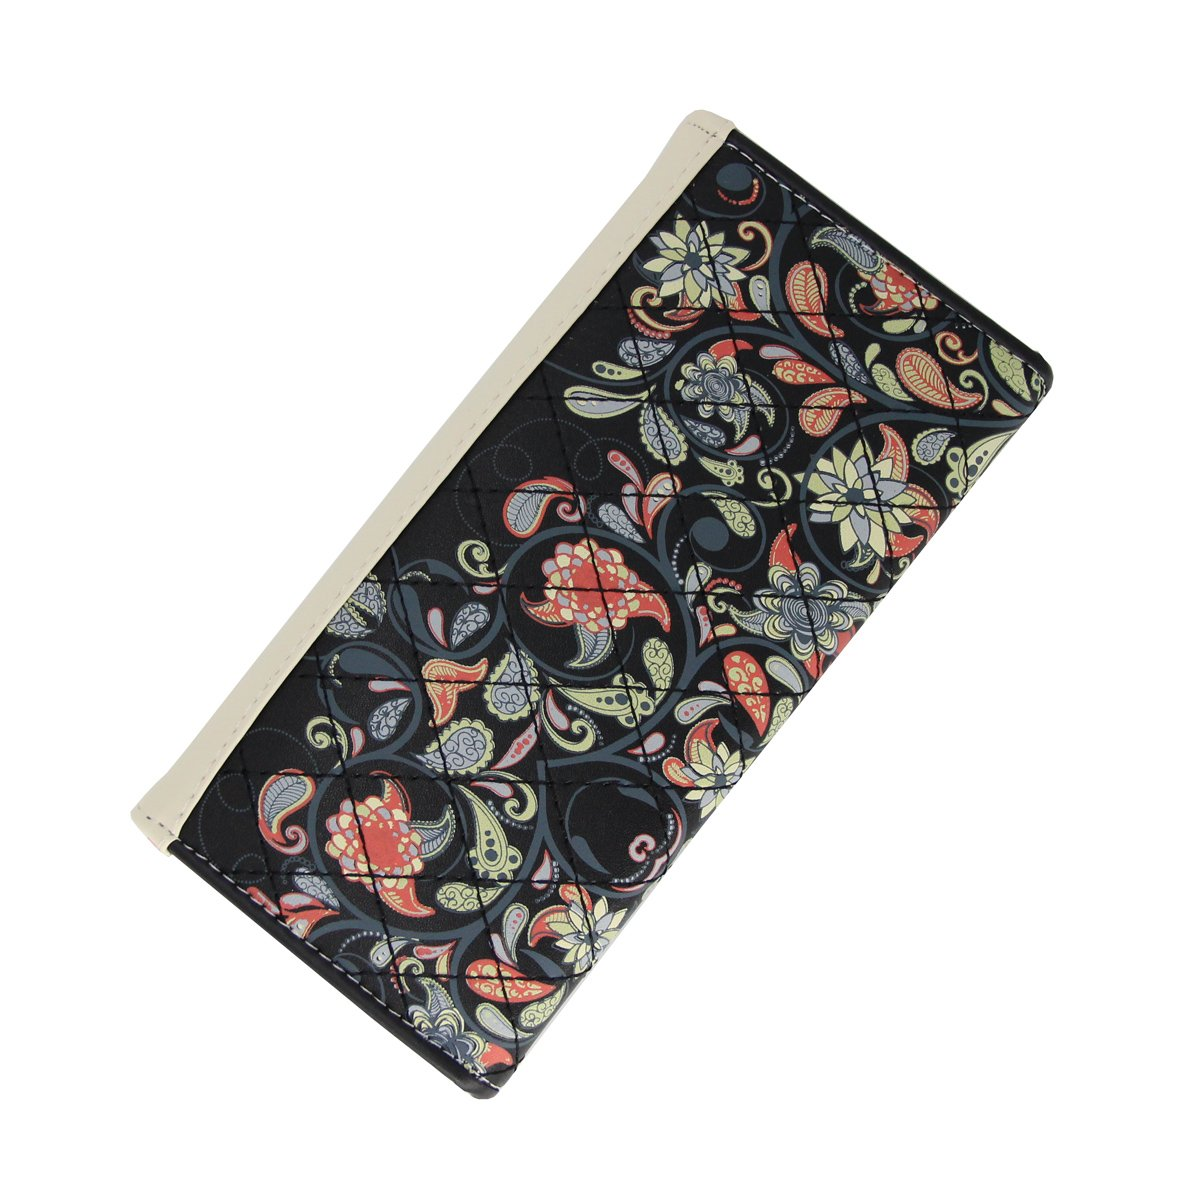 Womens Leather Wallet Purse Handbag Floral Money Clips Credit Card Case Holder by Uopen Endy (Image #8)